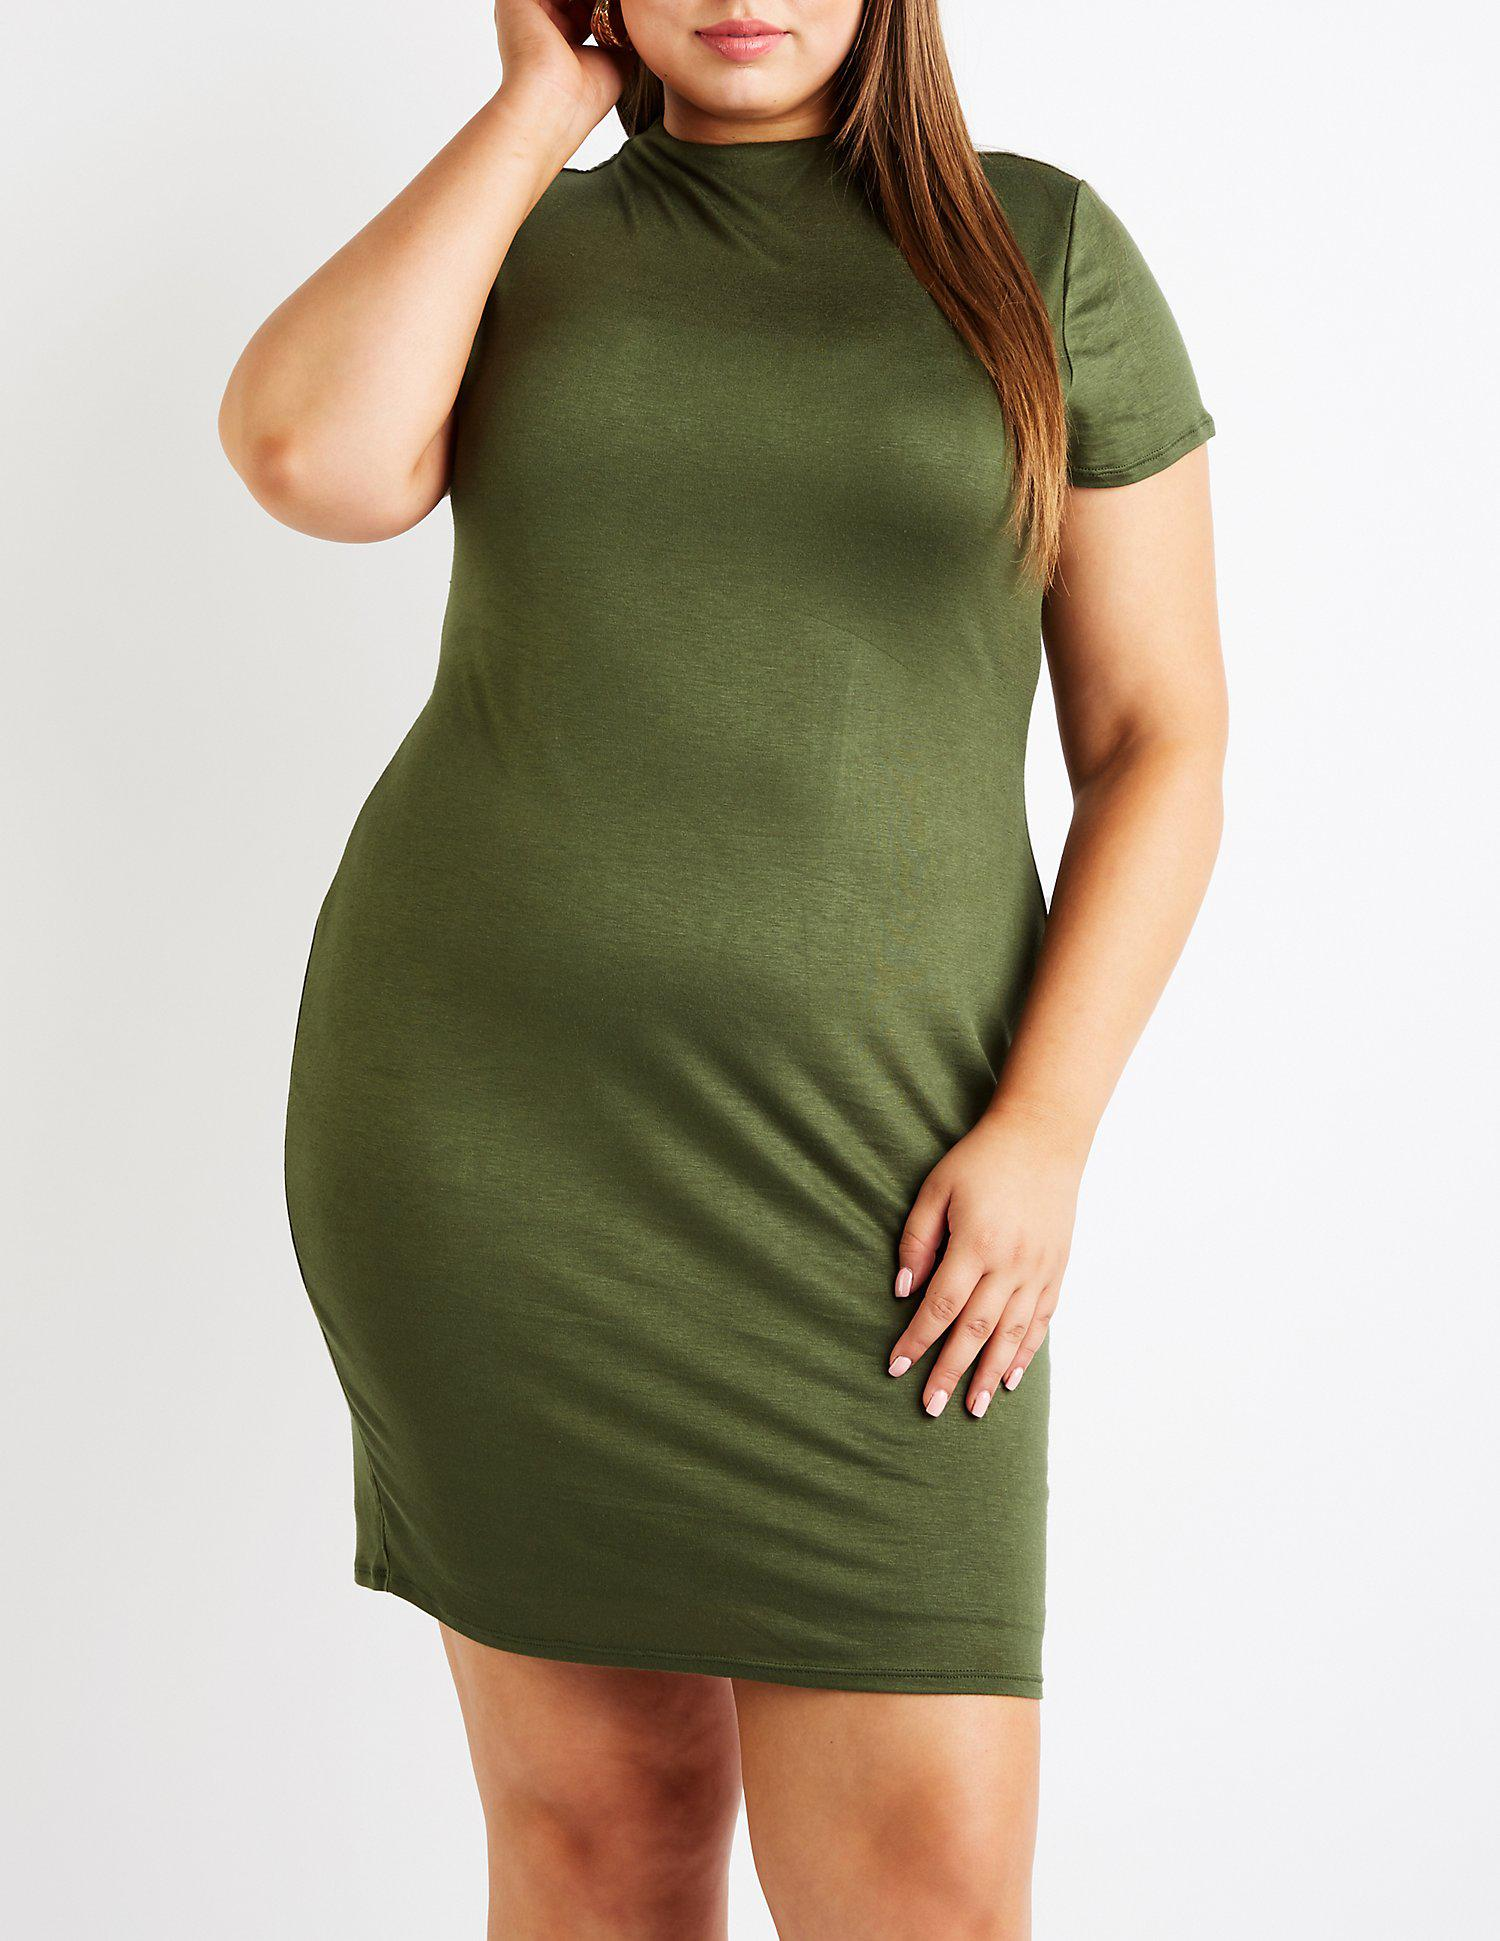 d9c011cb444 Lyst - Charlotte Russe Plus Size Bodycon Mini Dress in Green - Save 18%